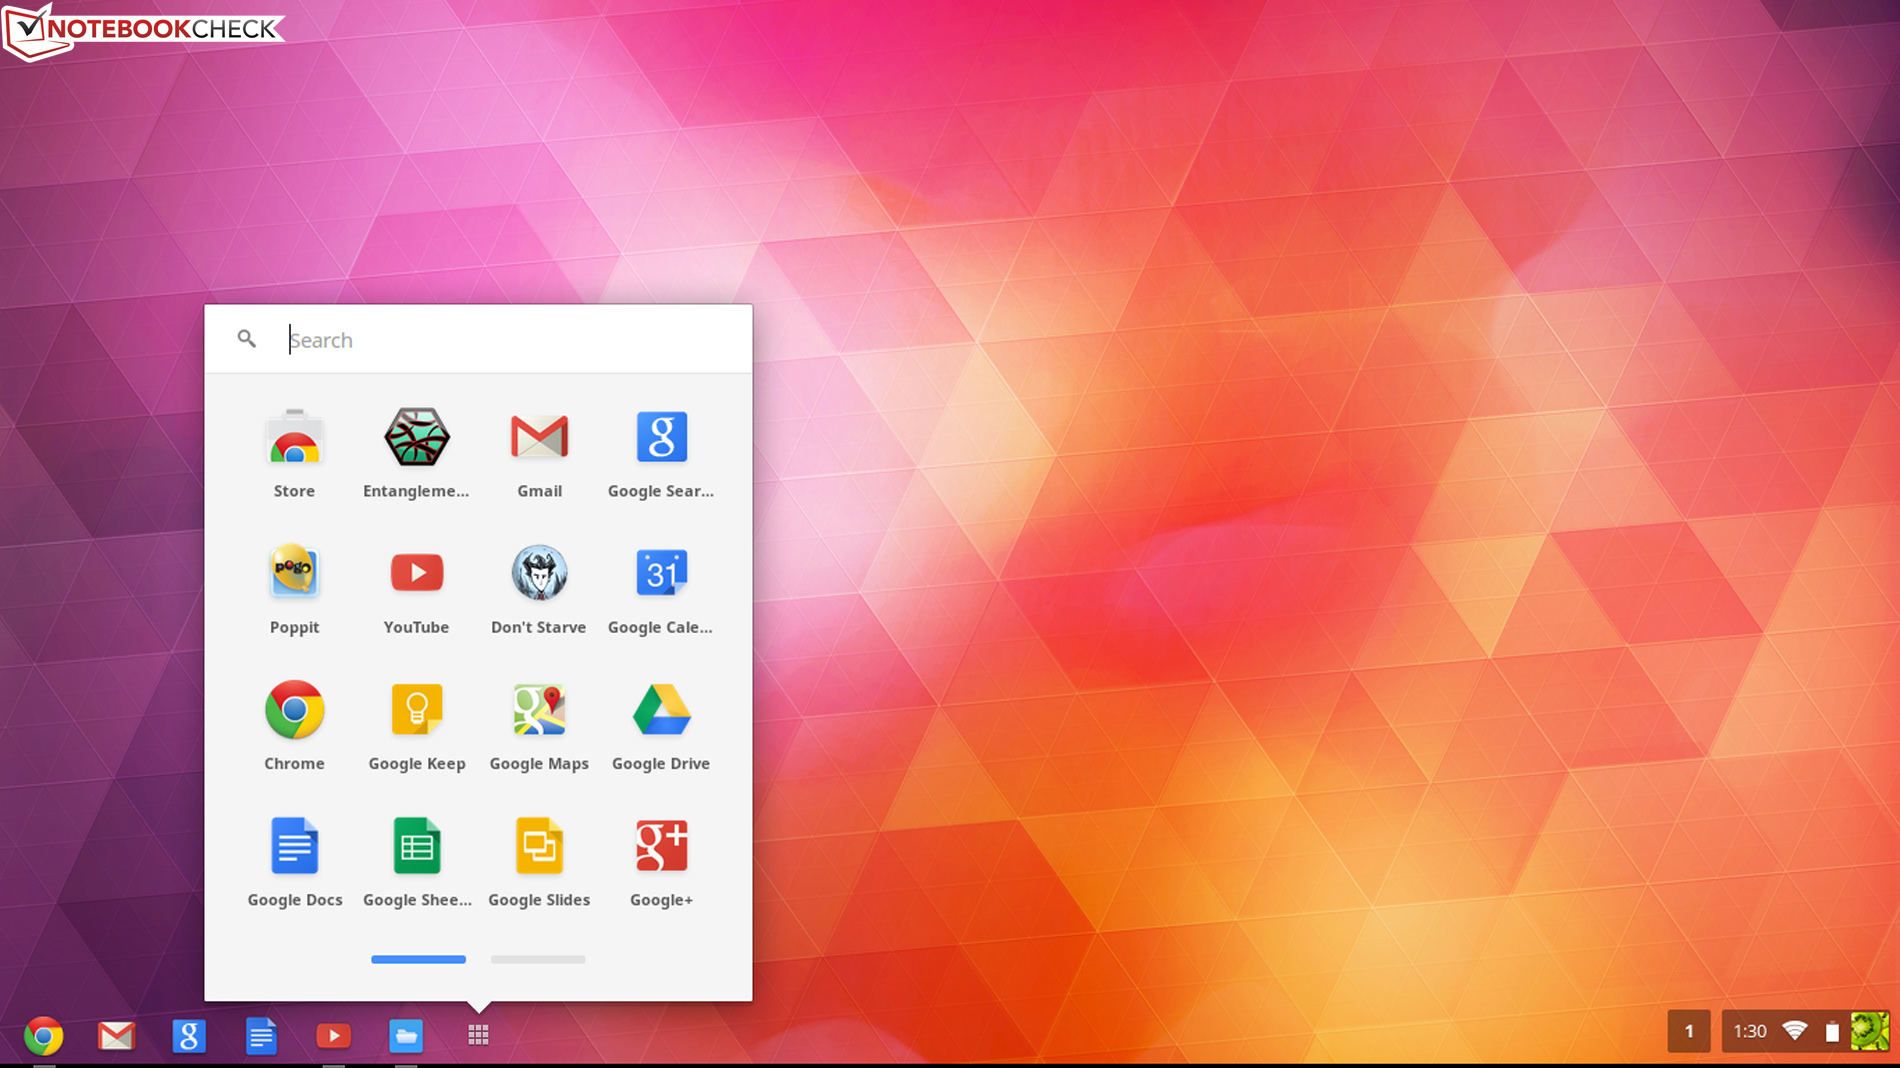 Hp notebook operating system - Chrome Os In Action